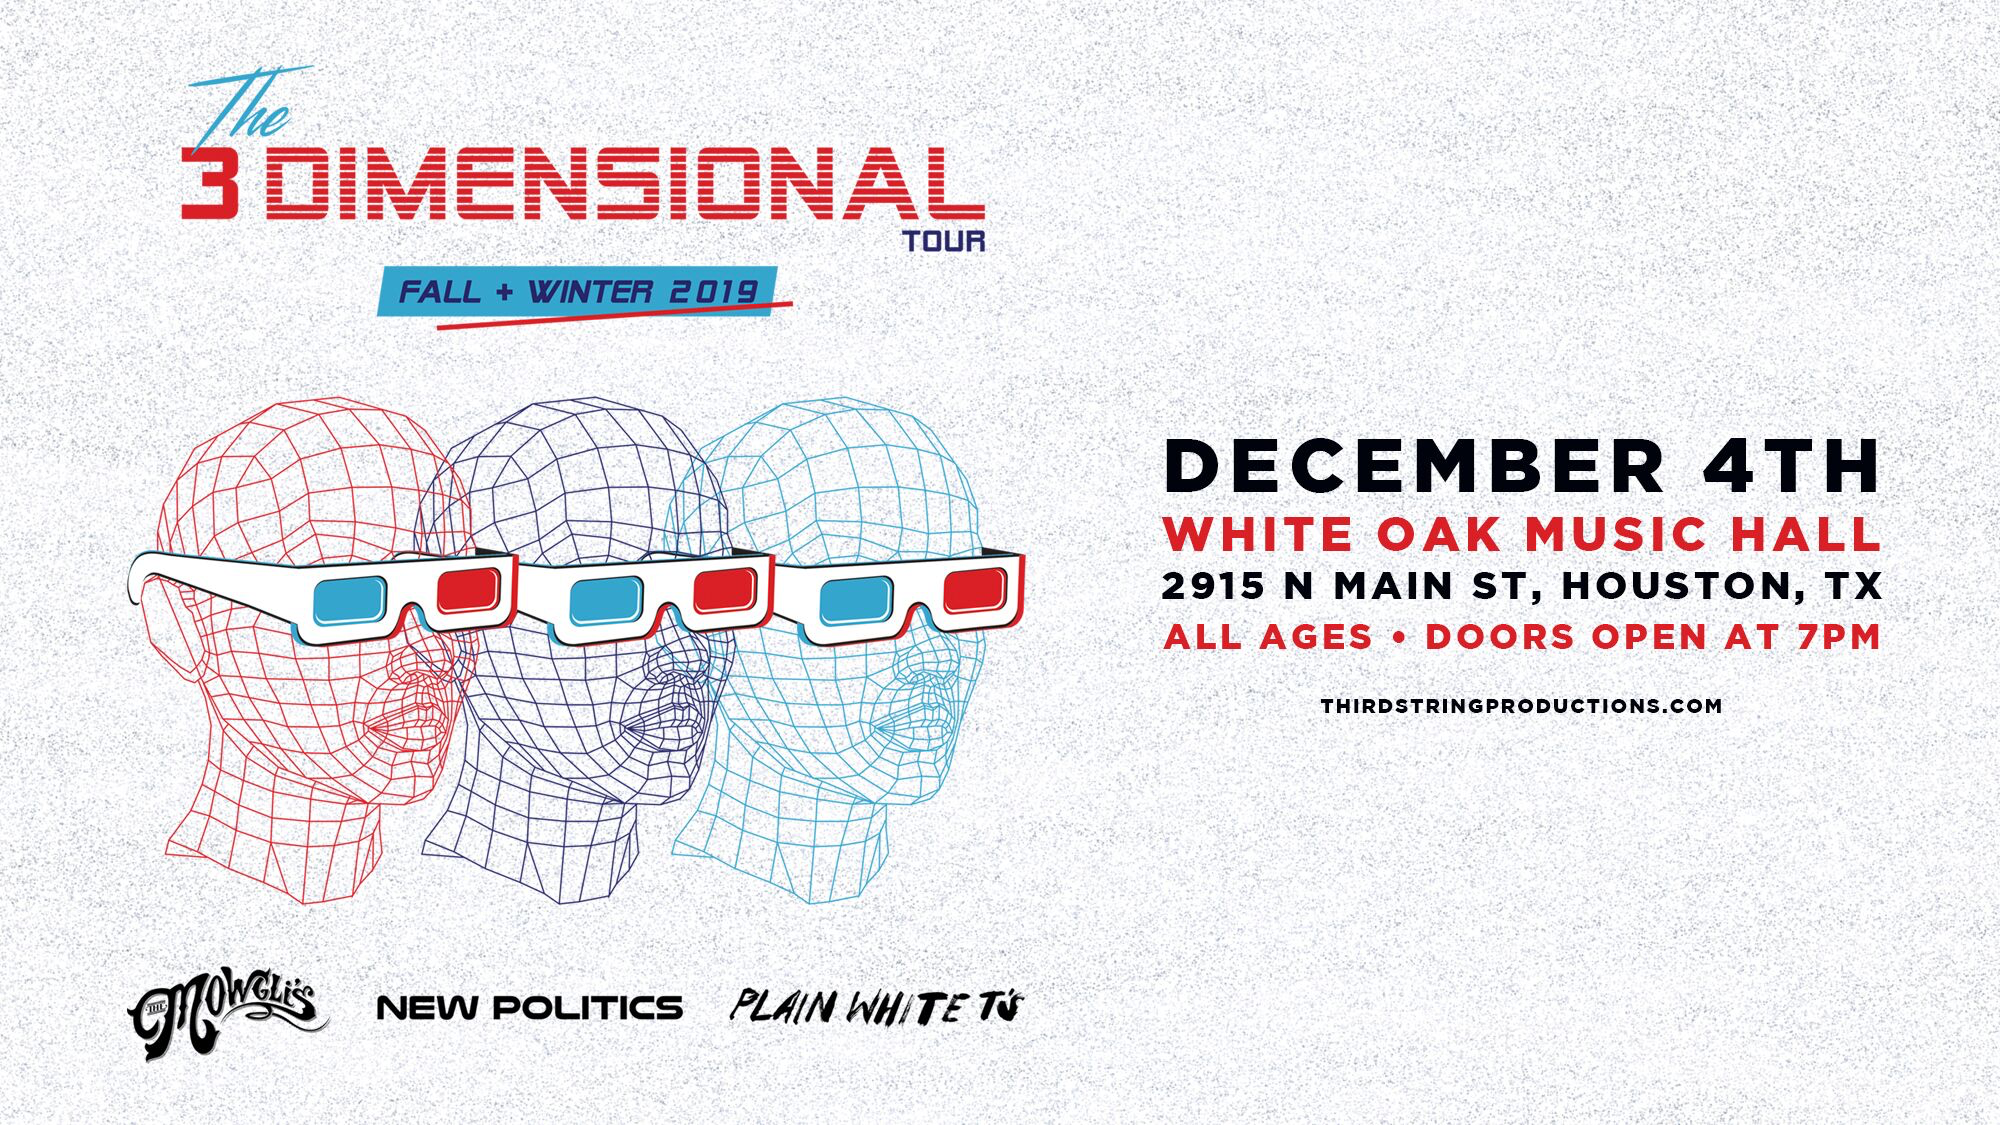 The Mowgli's, New Politics & Plain White T's – The 3 Dimensional Tour